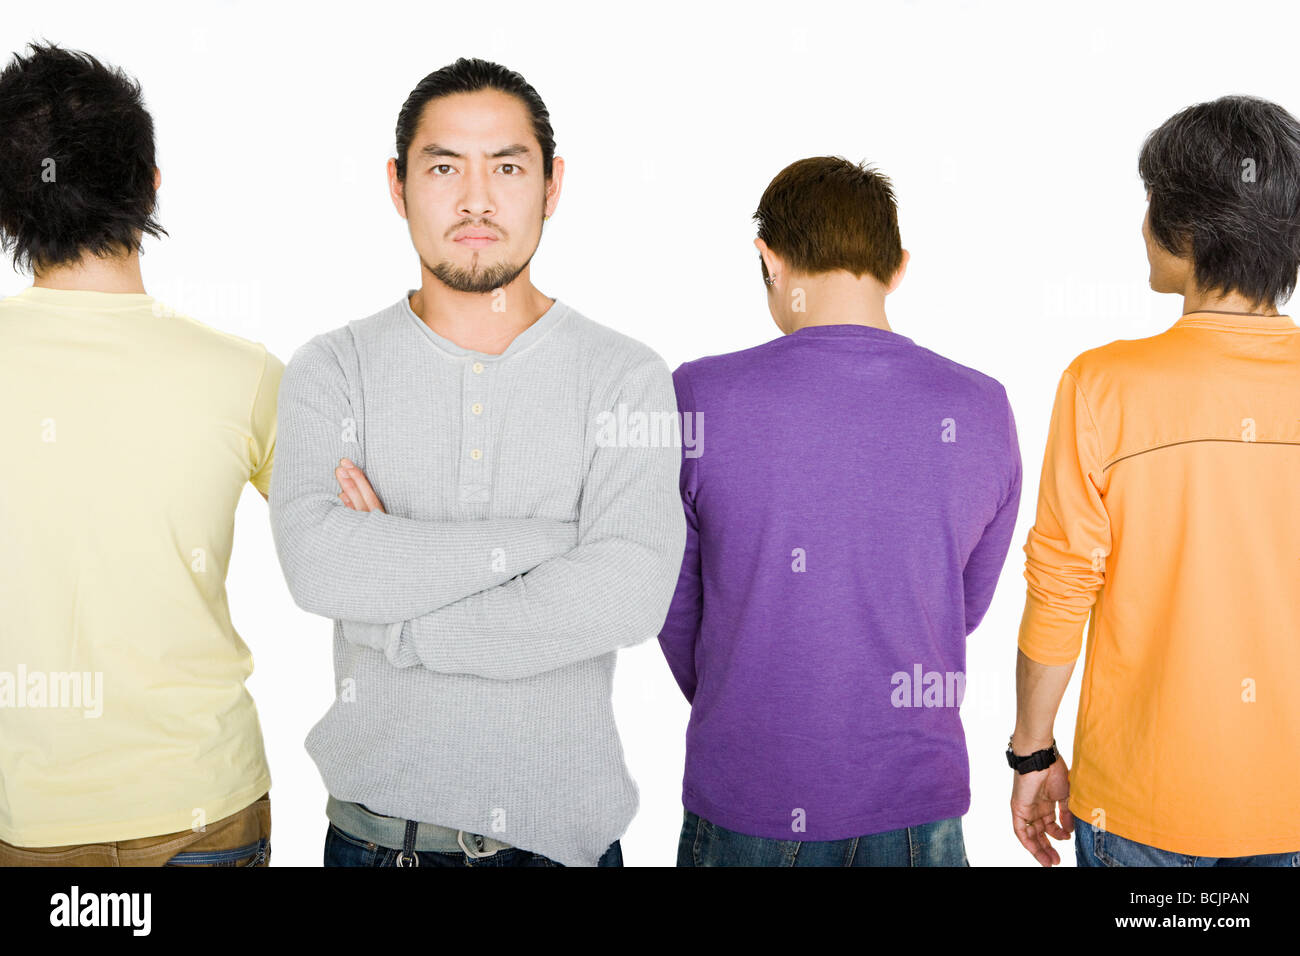 Angry man in row of people - Stock Image